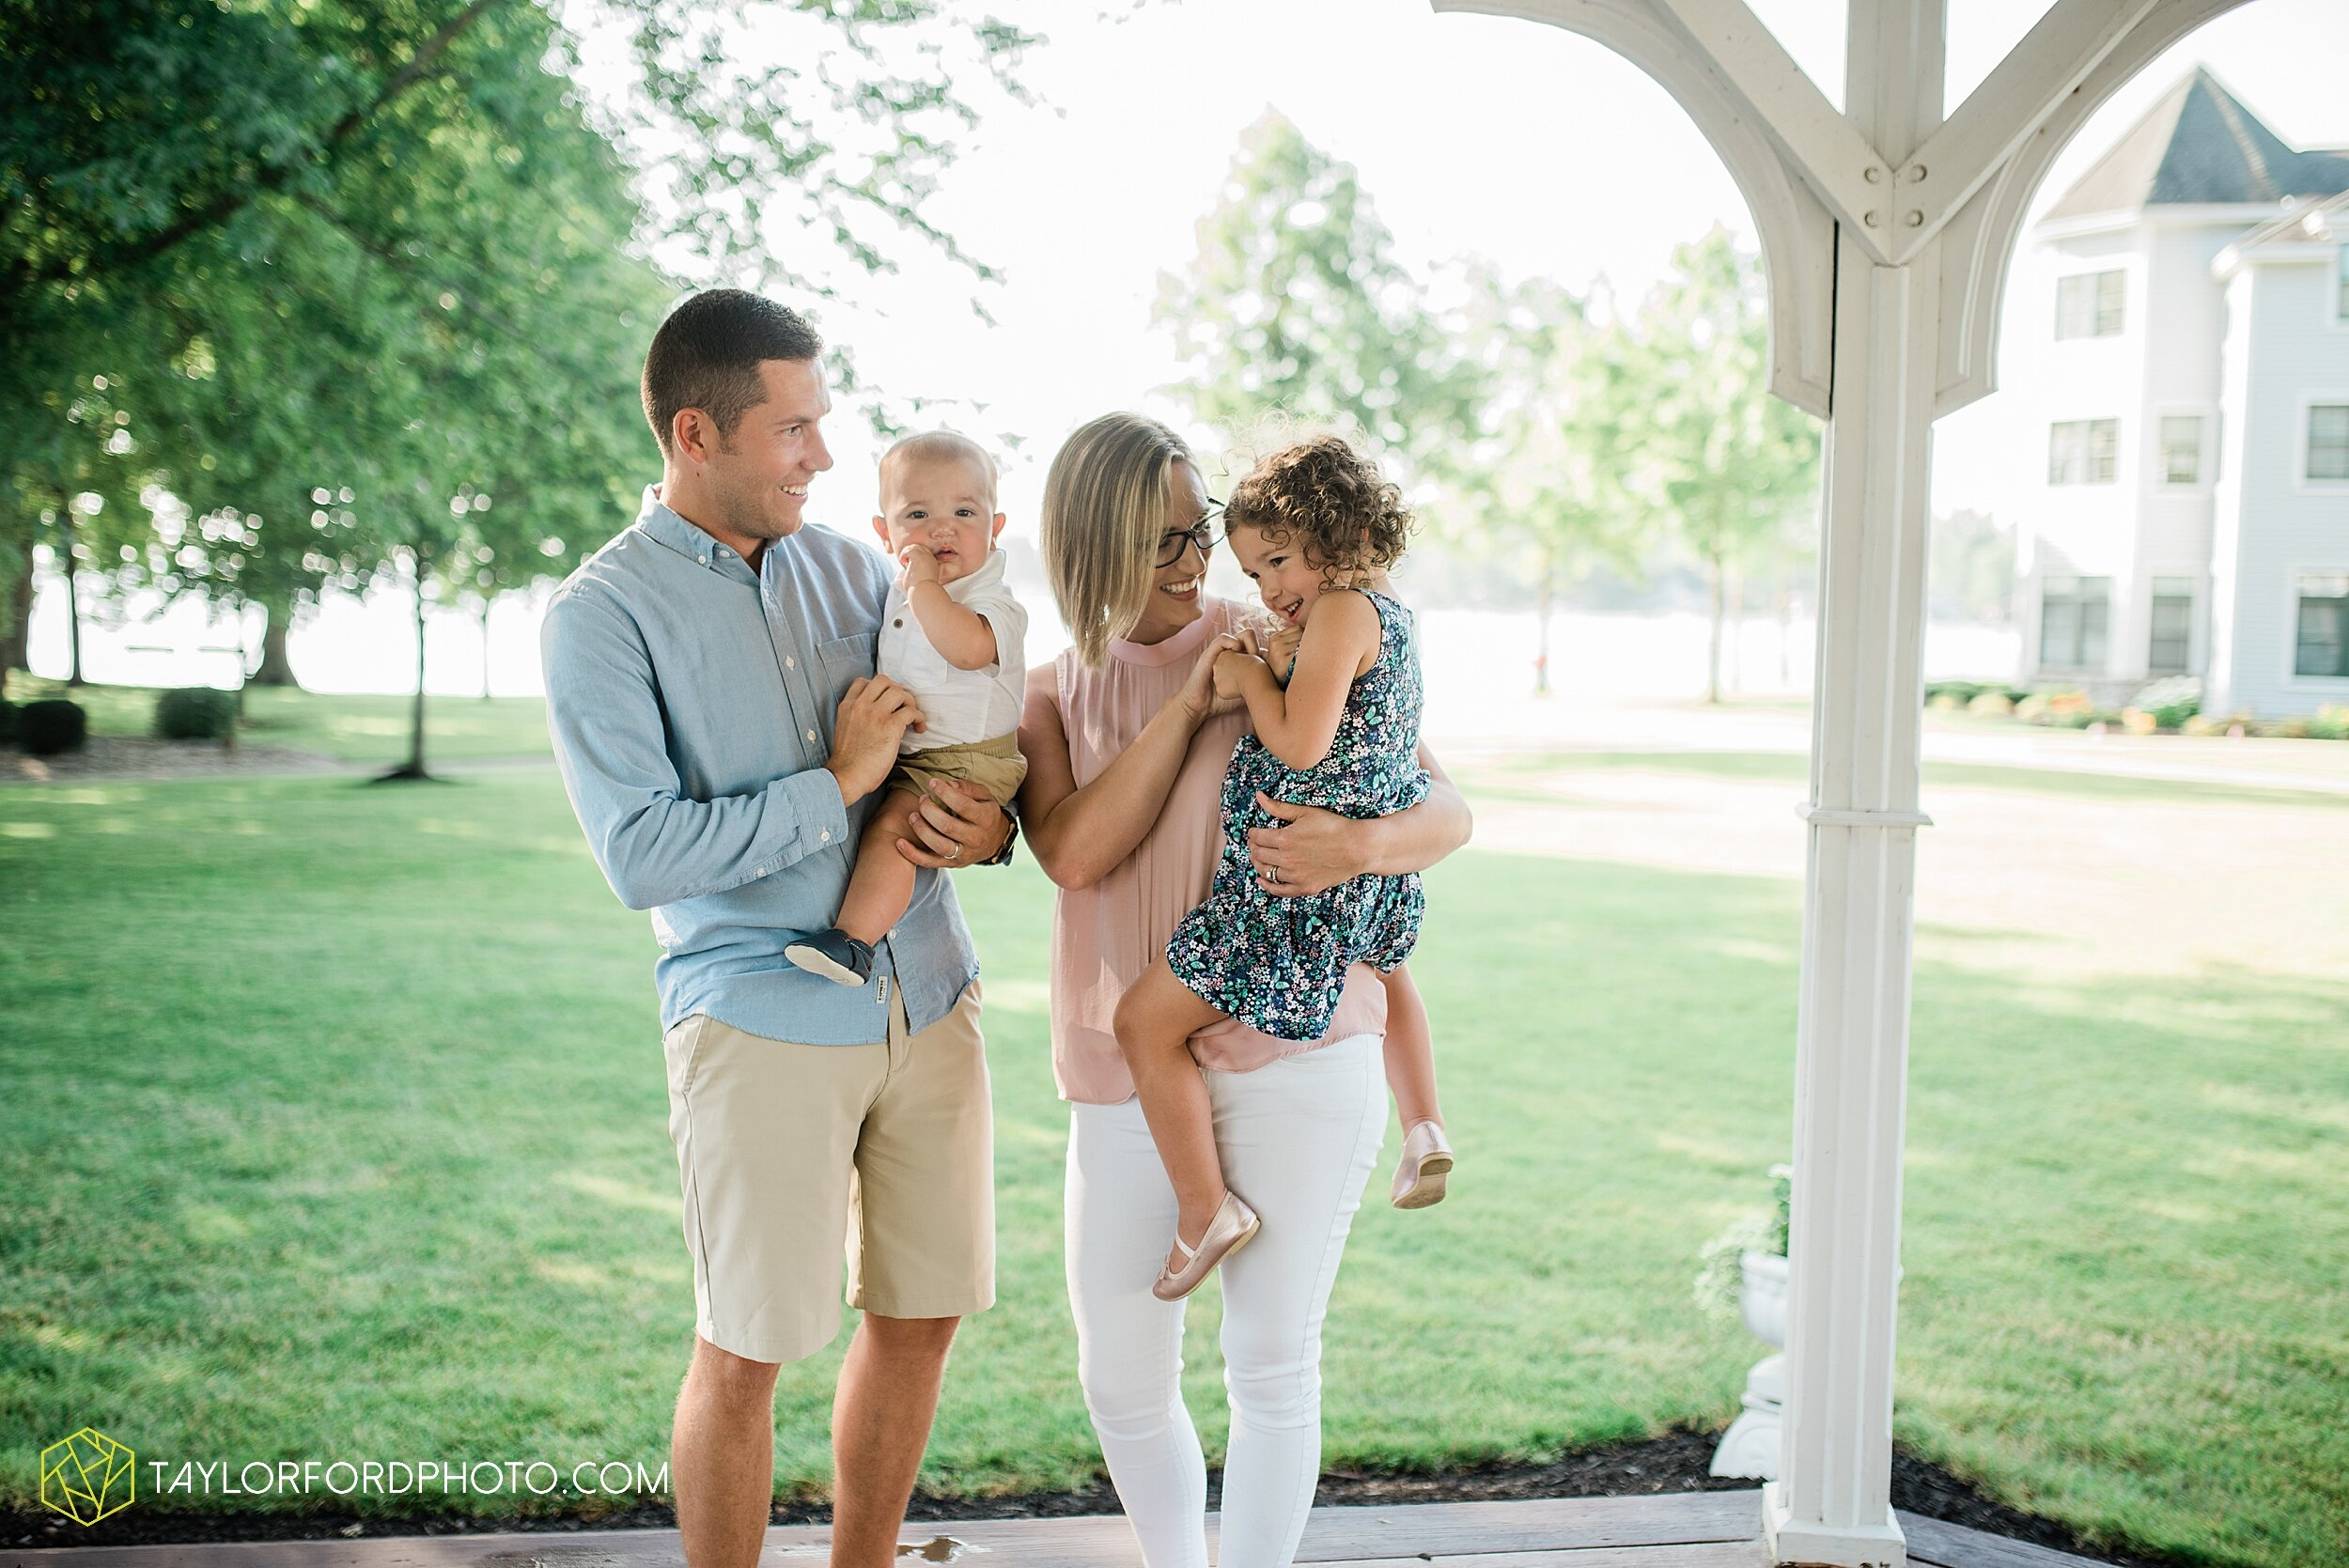 lake-wawasee-syracuse-indiana-oakwood-resort-family-mini-fourth-4th-of-july-summer-photography-taylor-ford-hirschy-photographer_3634.jpg